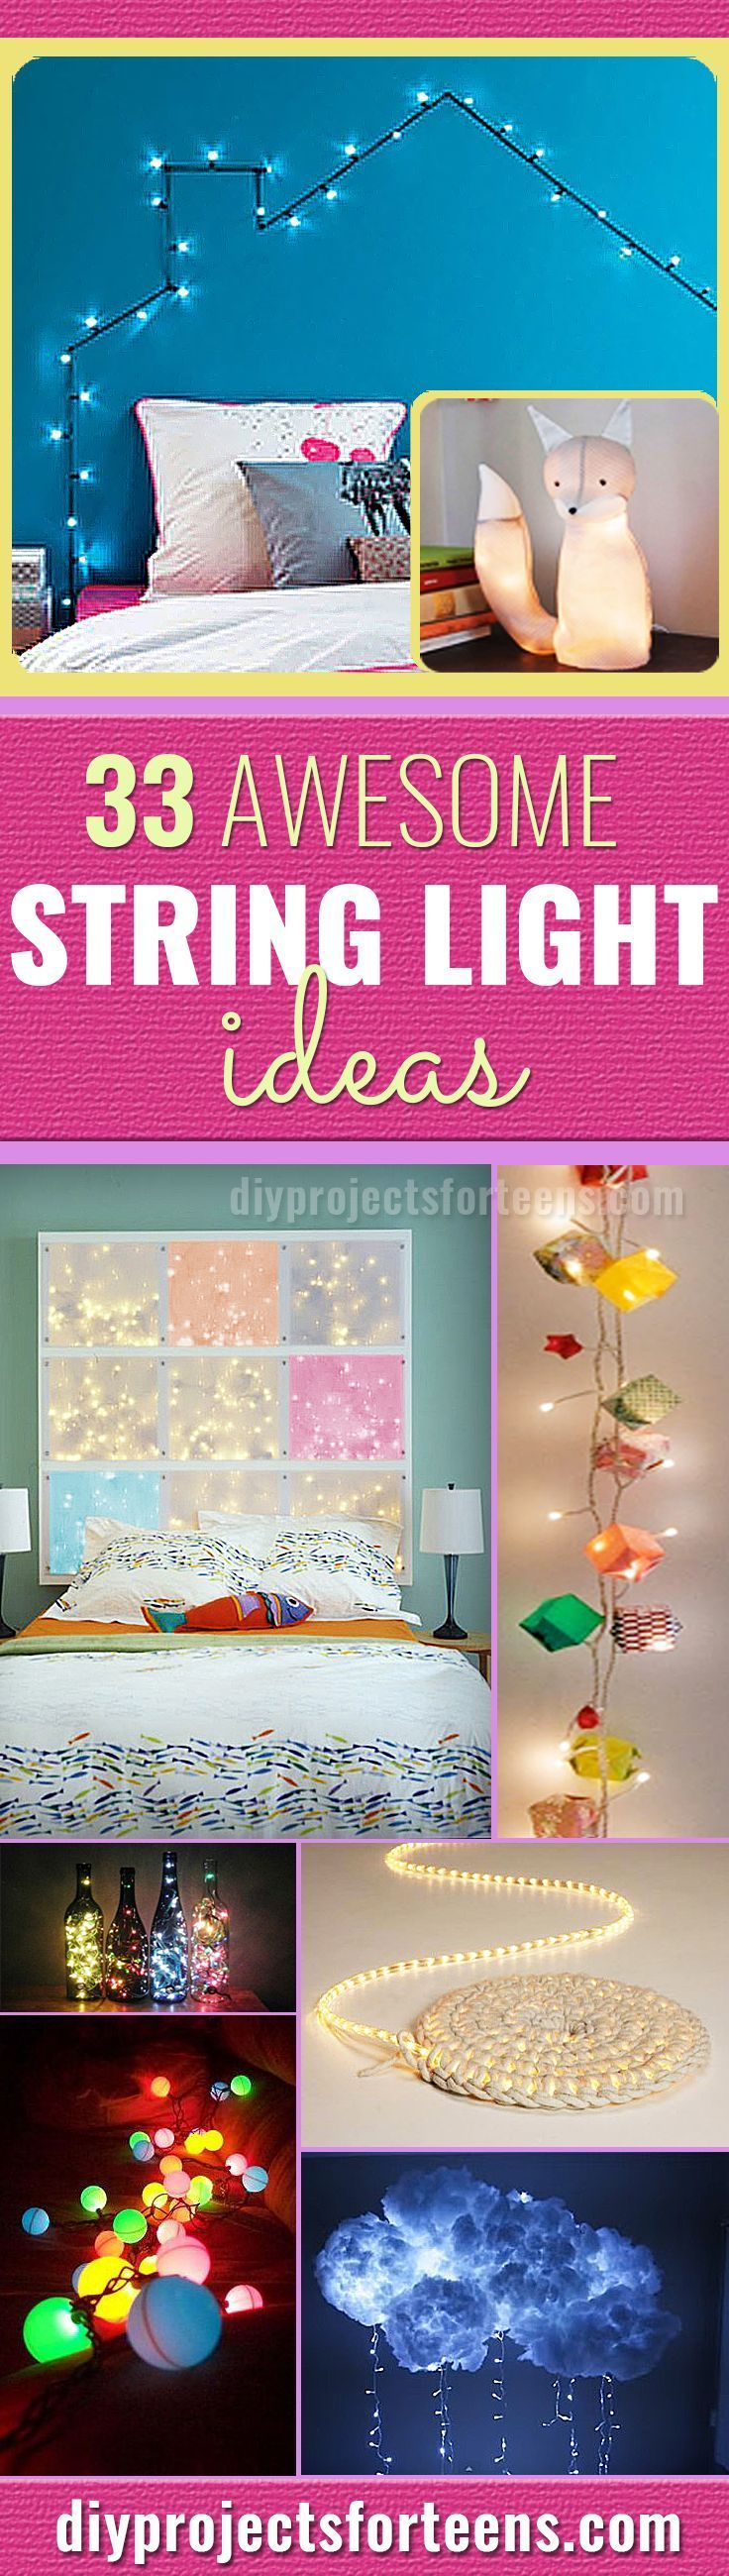 DIY String Lights for the Bedroom and Cool Decor Ideas With String Lights for Awesome Room Decor - Perfect for Home, Apartment, Dorm or Teens Room